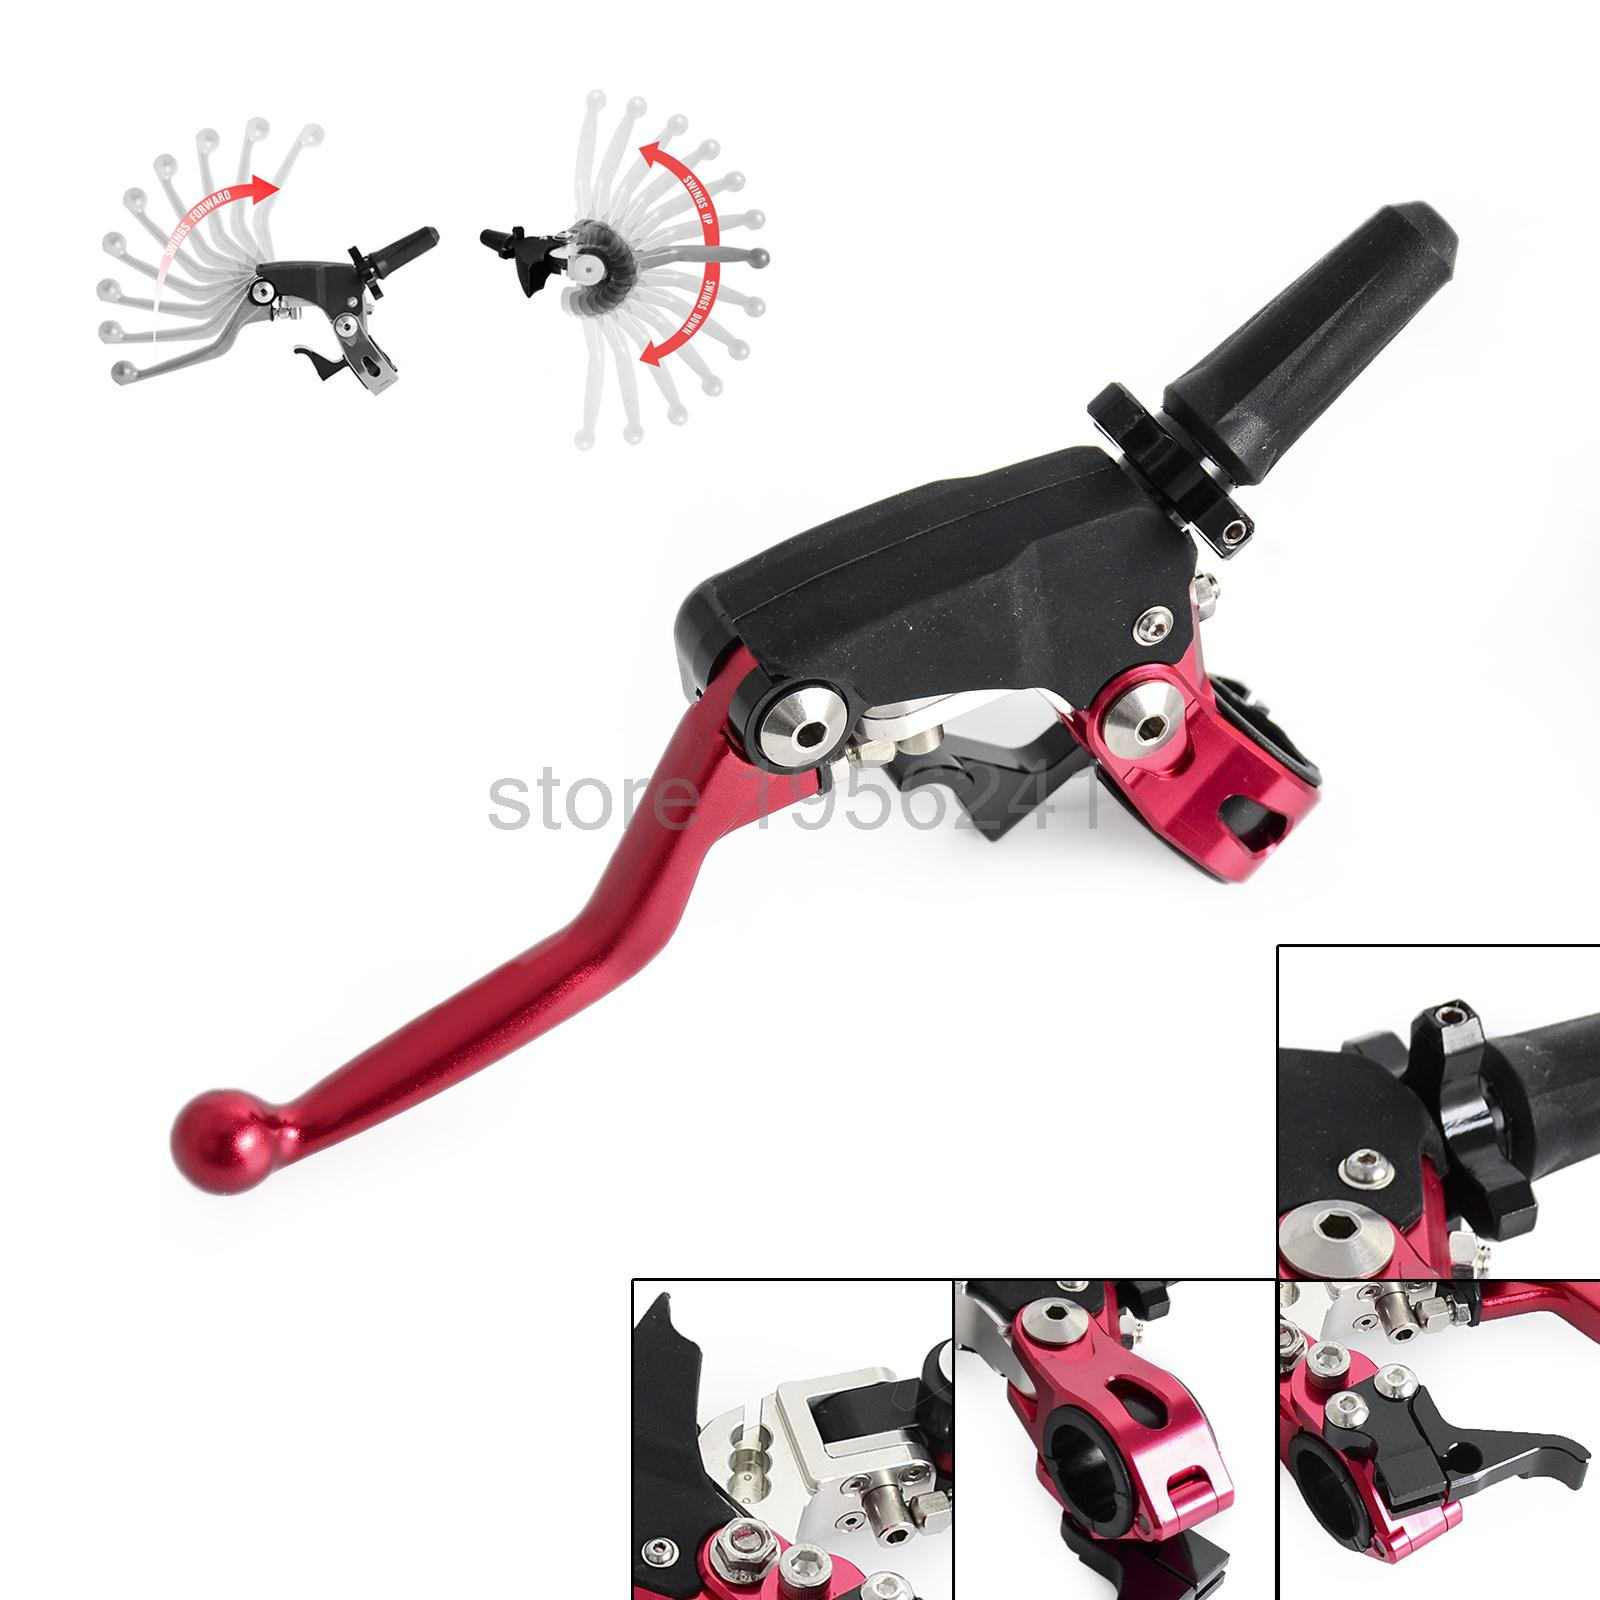 Forged Dirt Bikes Folding Clutch Lever Assembly Perch w/ Hot Start Lever For Honda CR CRF XL XR 125 150 250 400 450 650 иконка из серебра божья матерь семистрельная